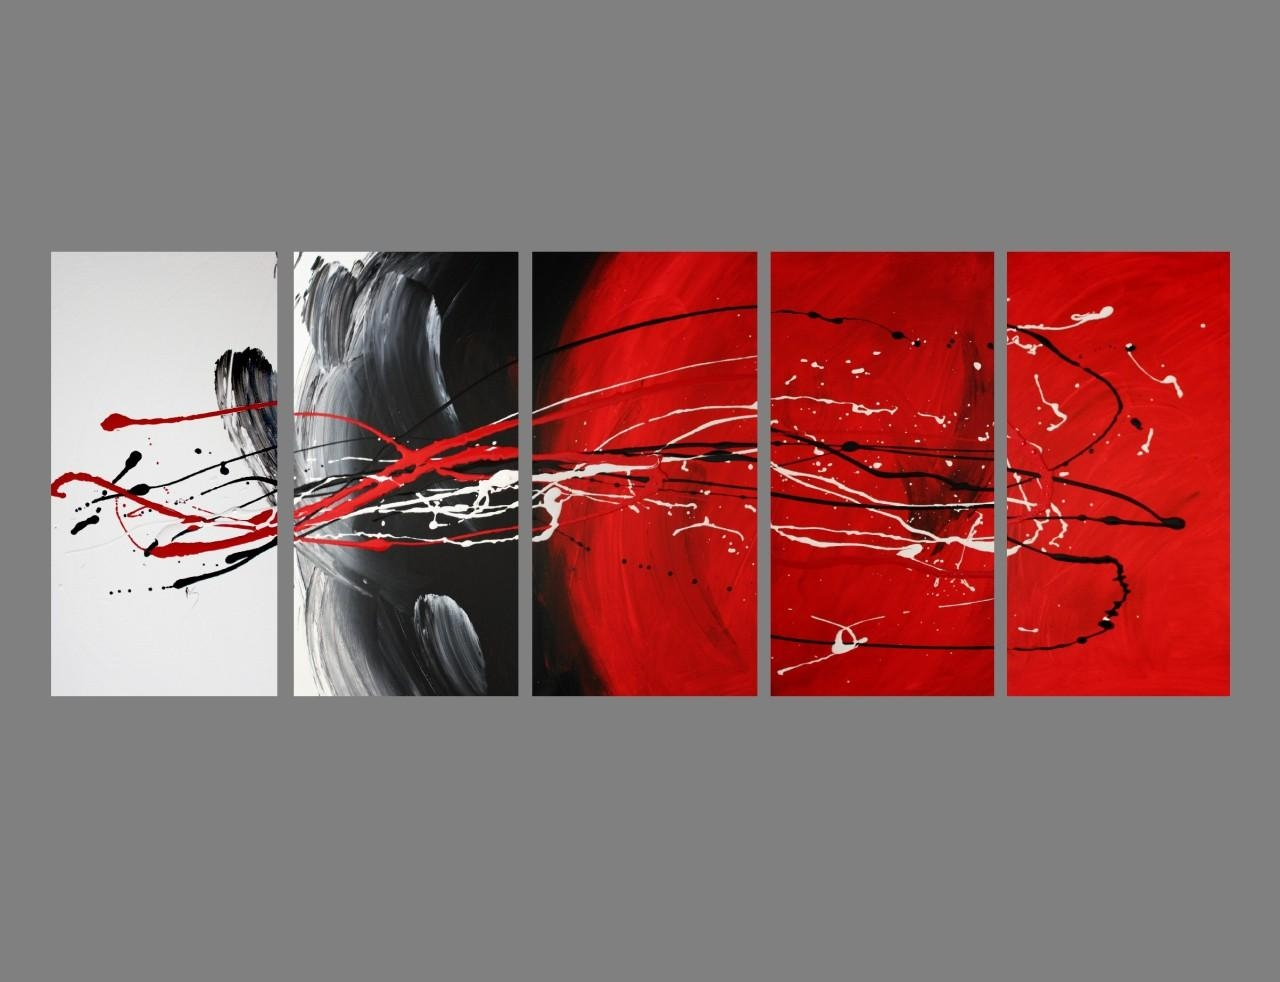 Black White And Red Canvas Art 2017 – Grasscloth Wallpaper Regarding Black And White Wall Art With Red (Image 7 of 20)